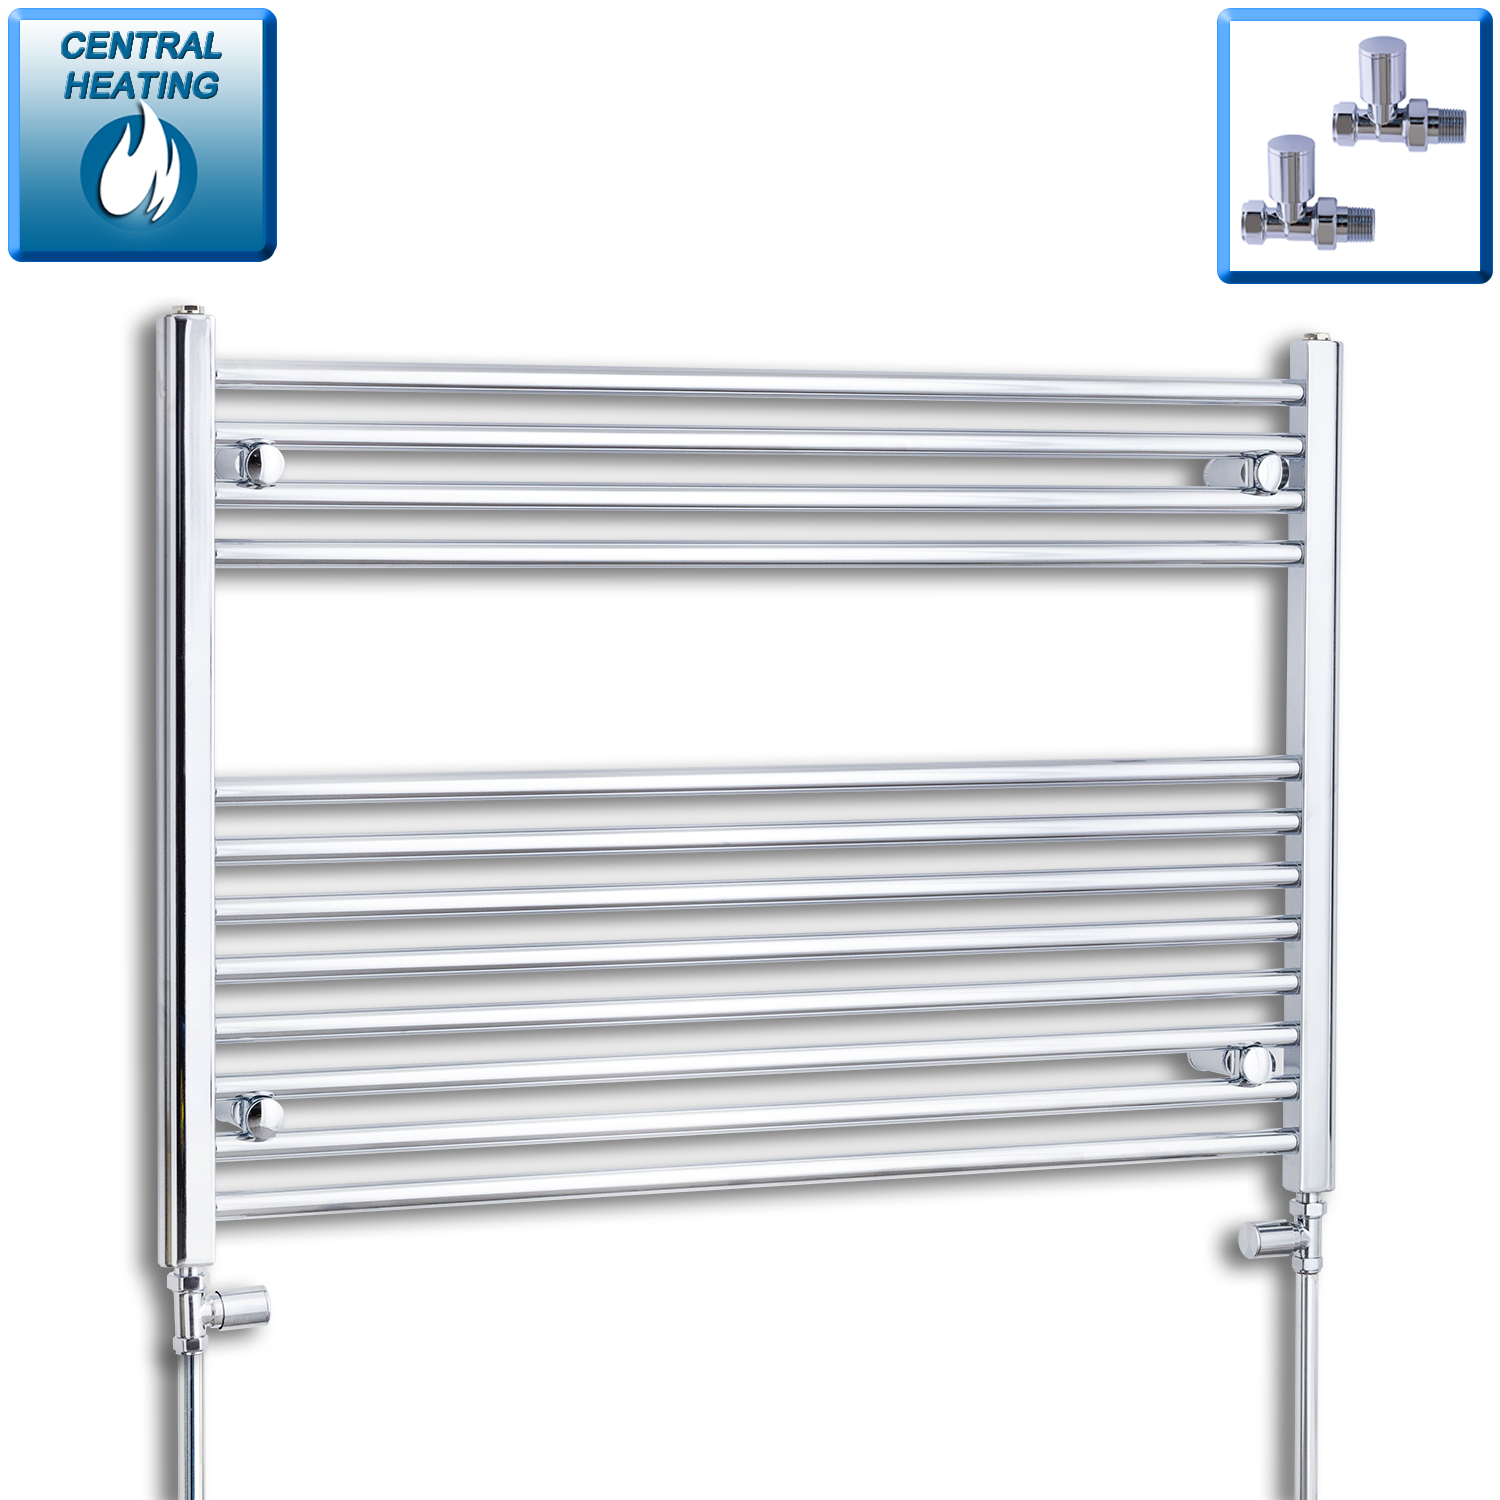 1000mm Wide 700mm High Flat Chrome Heated Towel Rail Radiator HTR,With Straight Valve